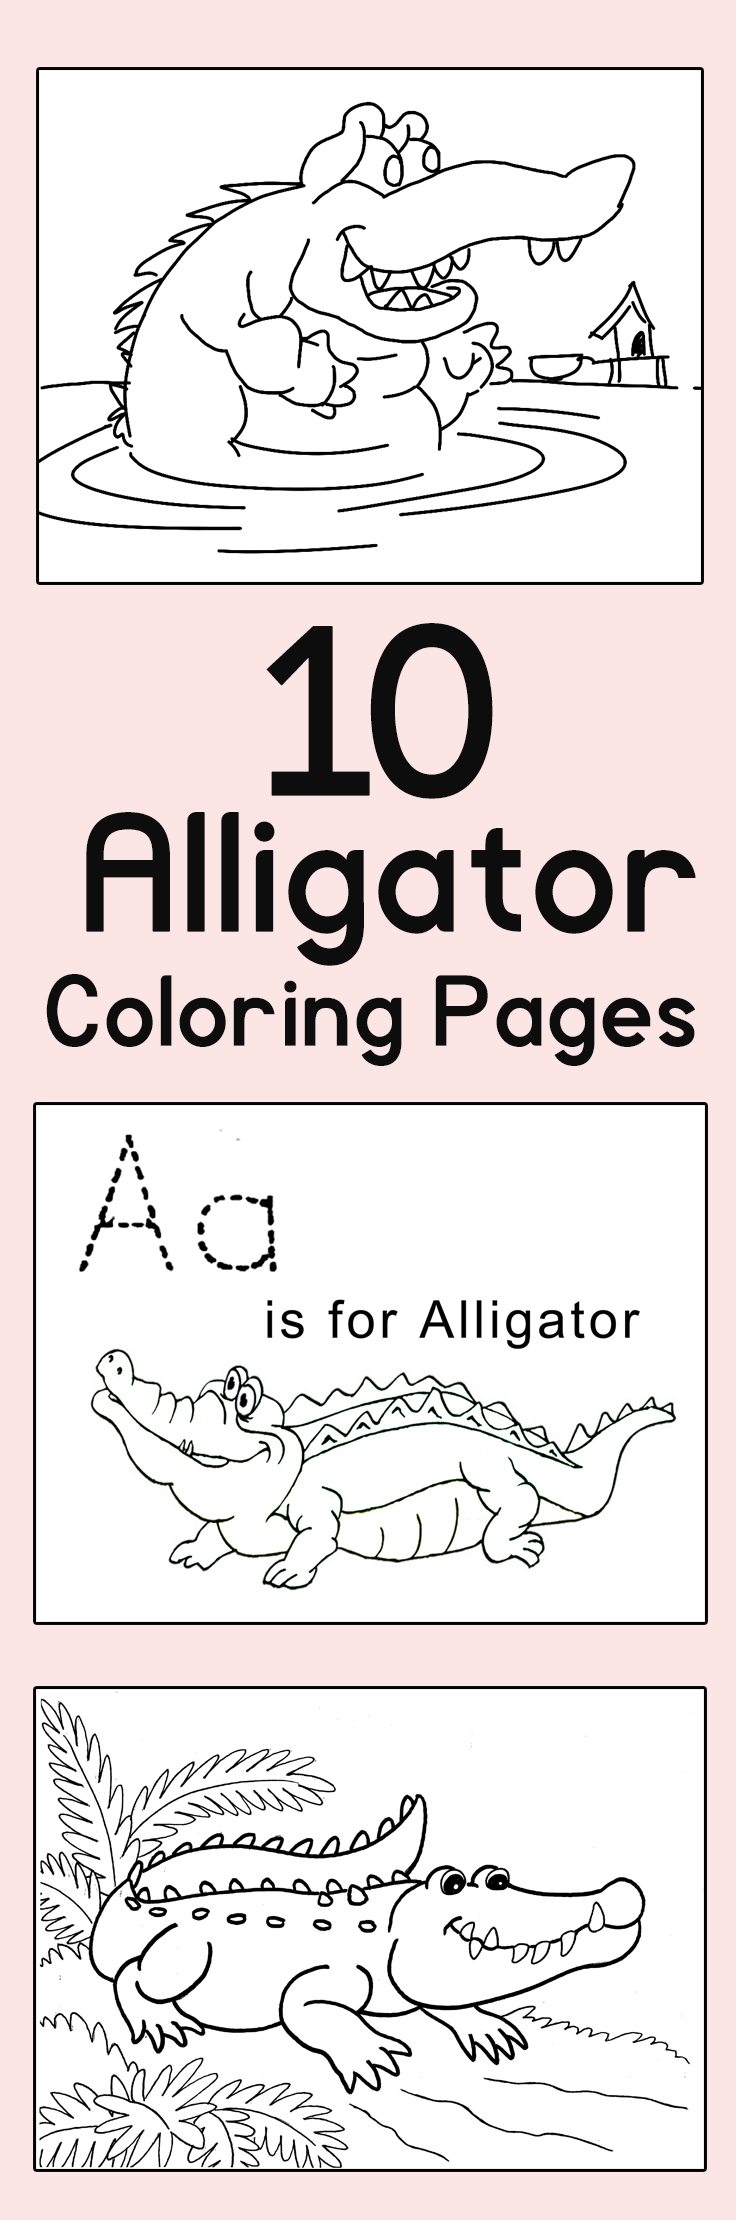 Free coloring pages alligator - Free Coloring Pages Alligator 51